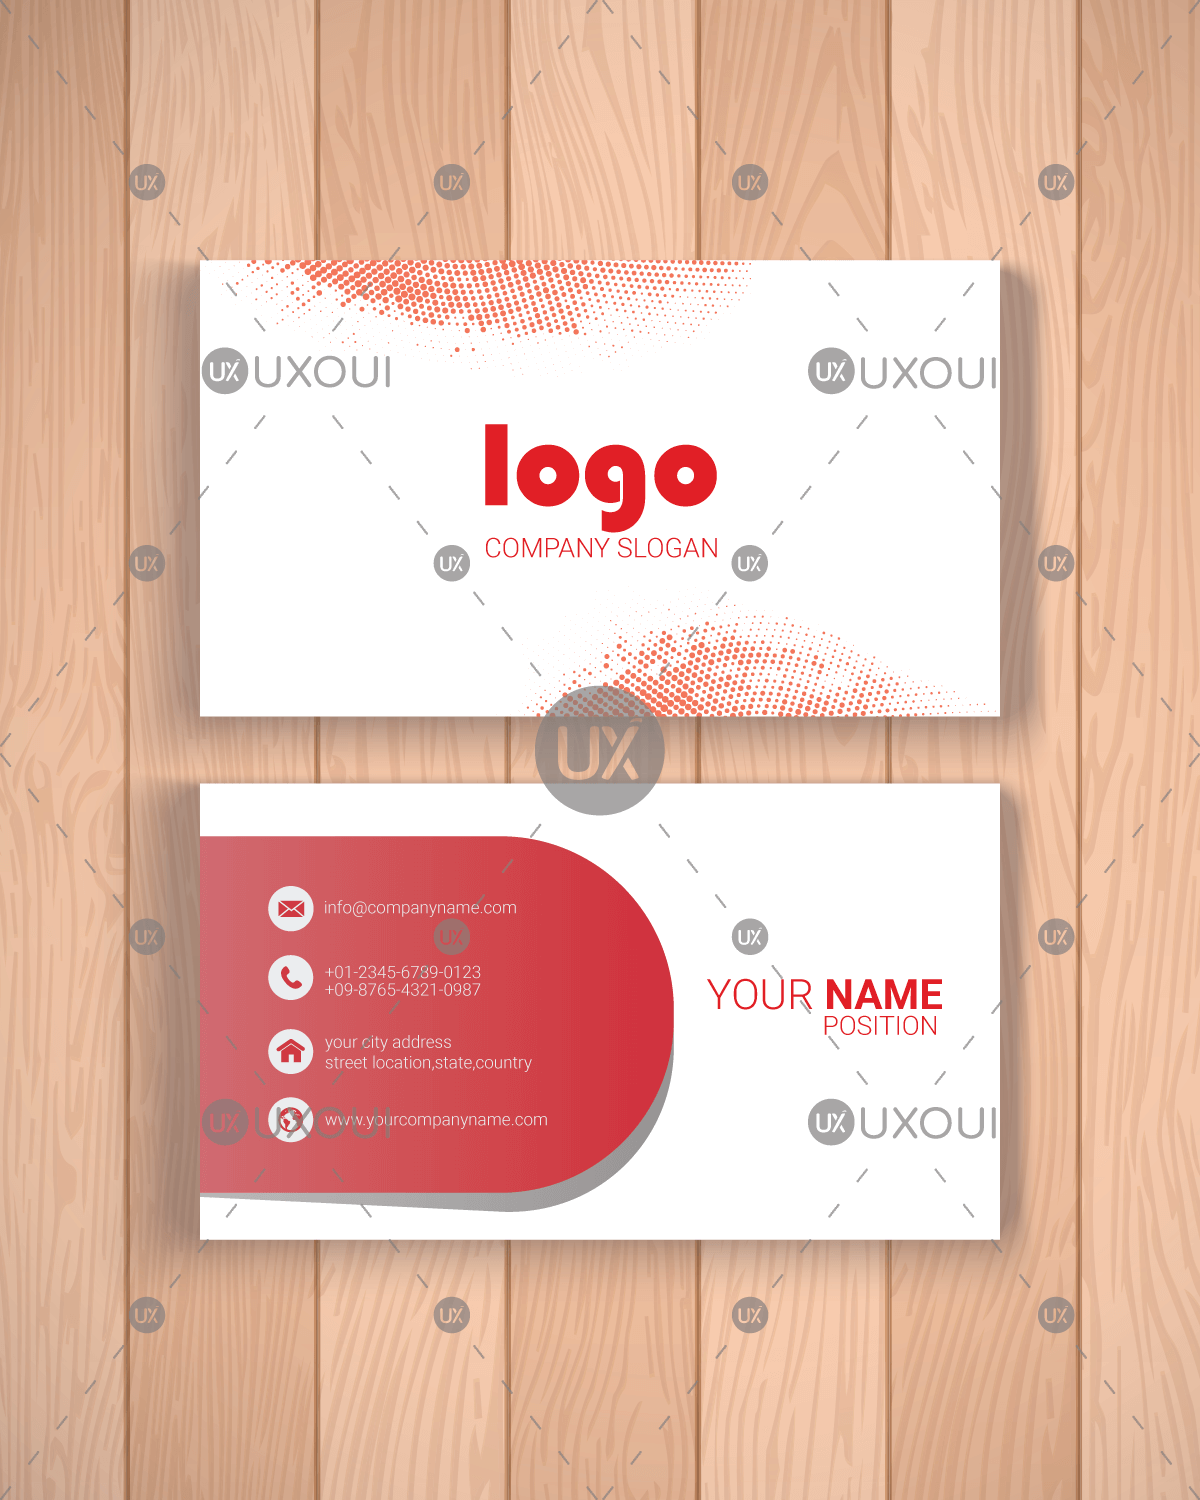 Clean modern professional business card design template vector uxoui clean modern professional business card design template vector friedricerecipe Image collections